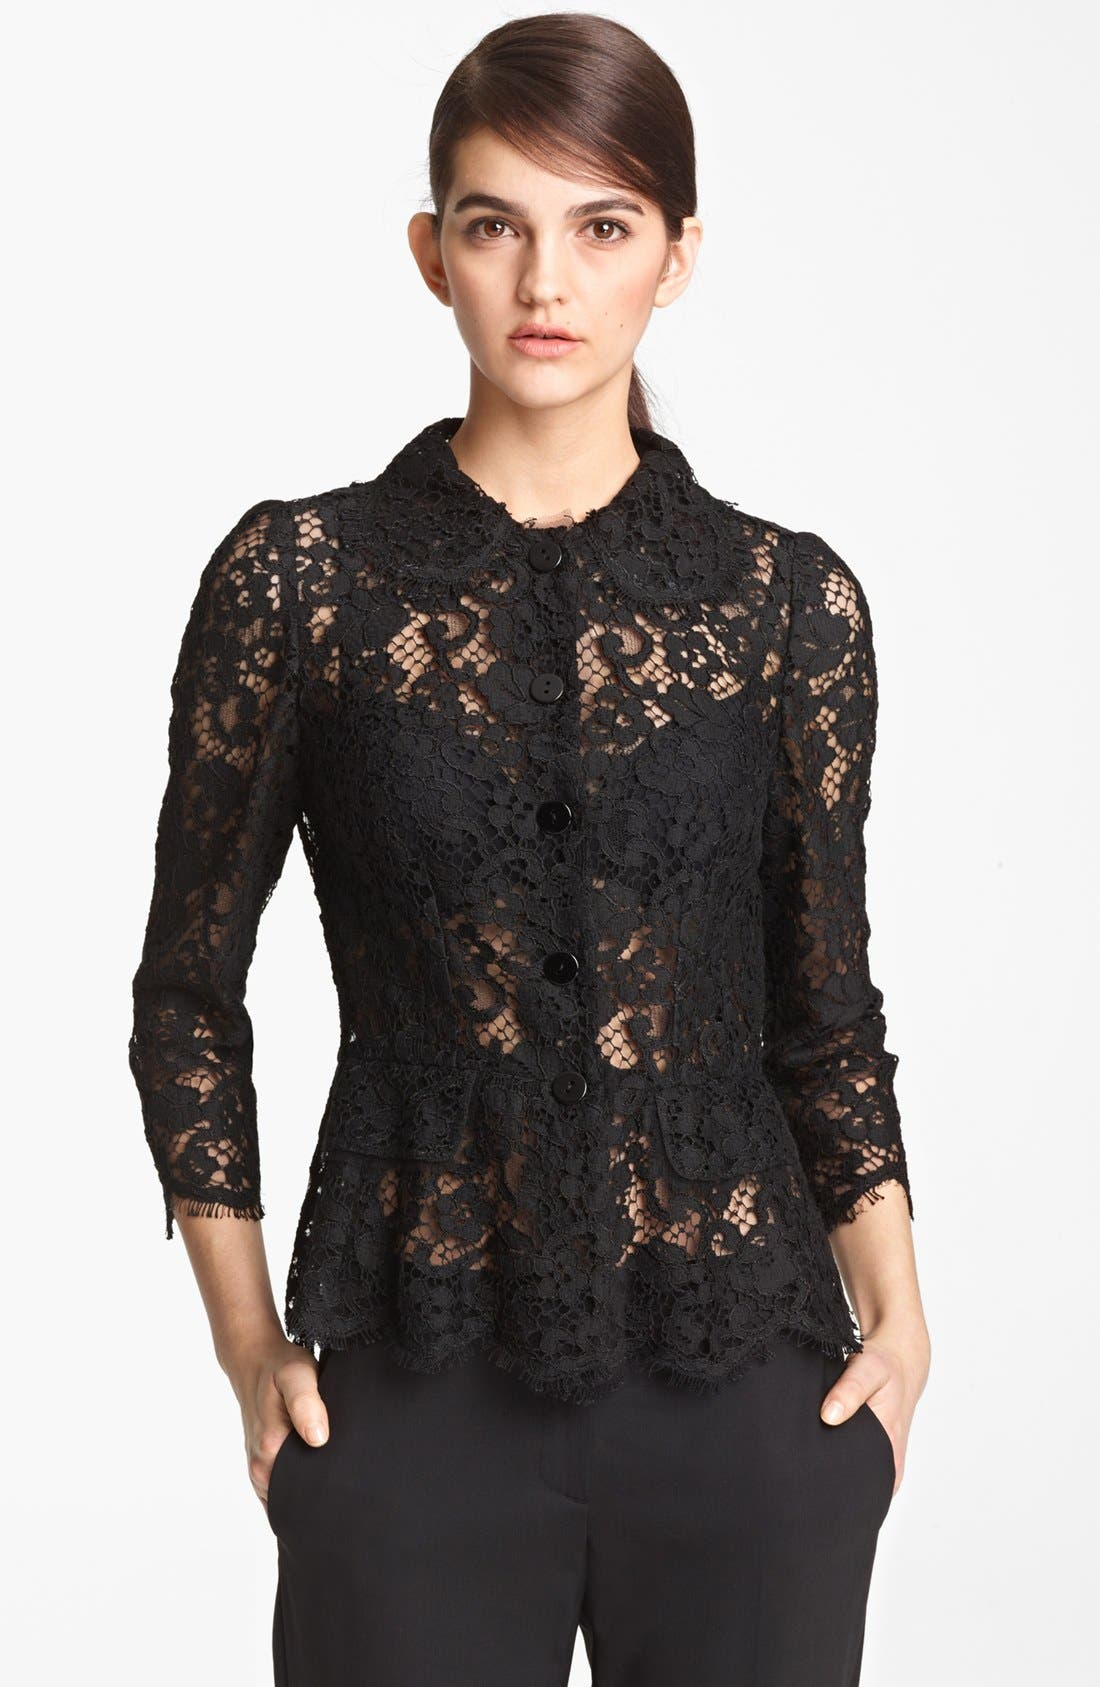 Alternate Image 1 Selected - Dolce&Gabbana Sheer Lace Jacket